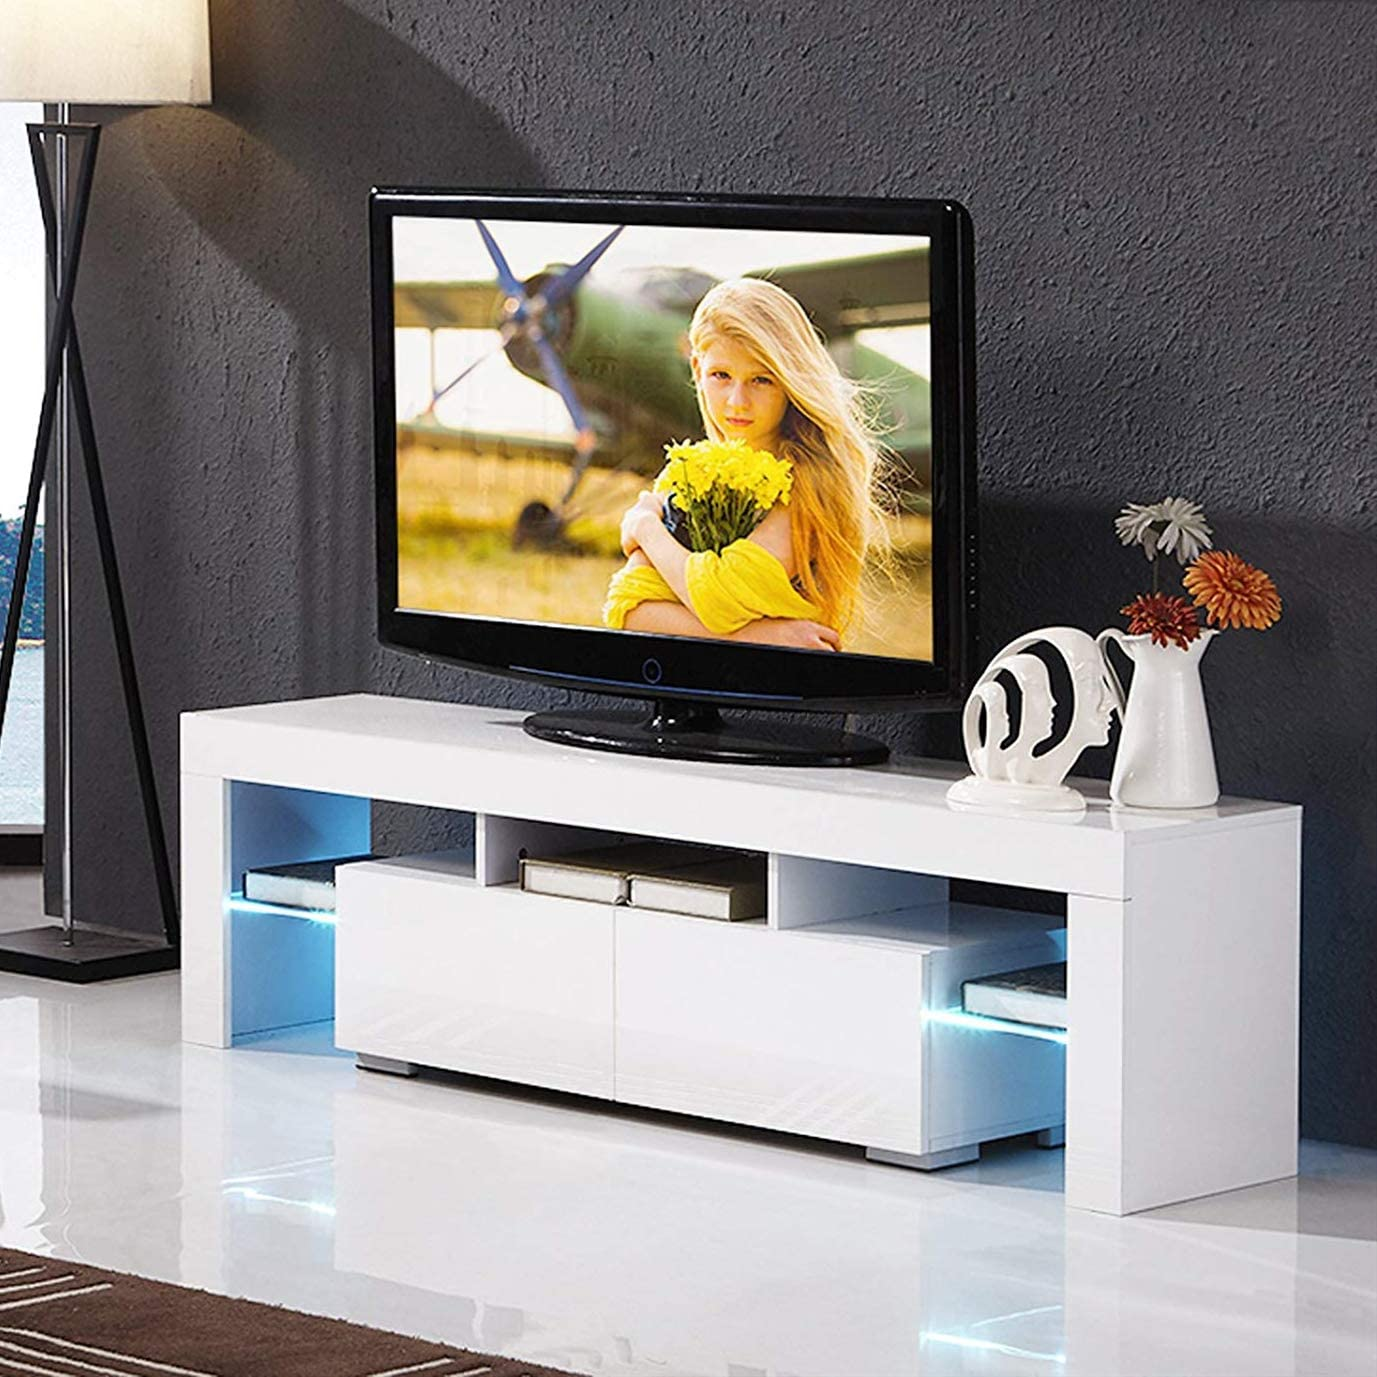 Pro Design Tv Meubel.Amazon Com Mecor Modern White Tv Stand With Led Lights High